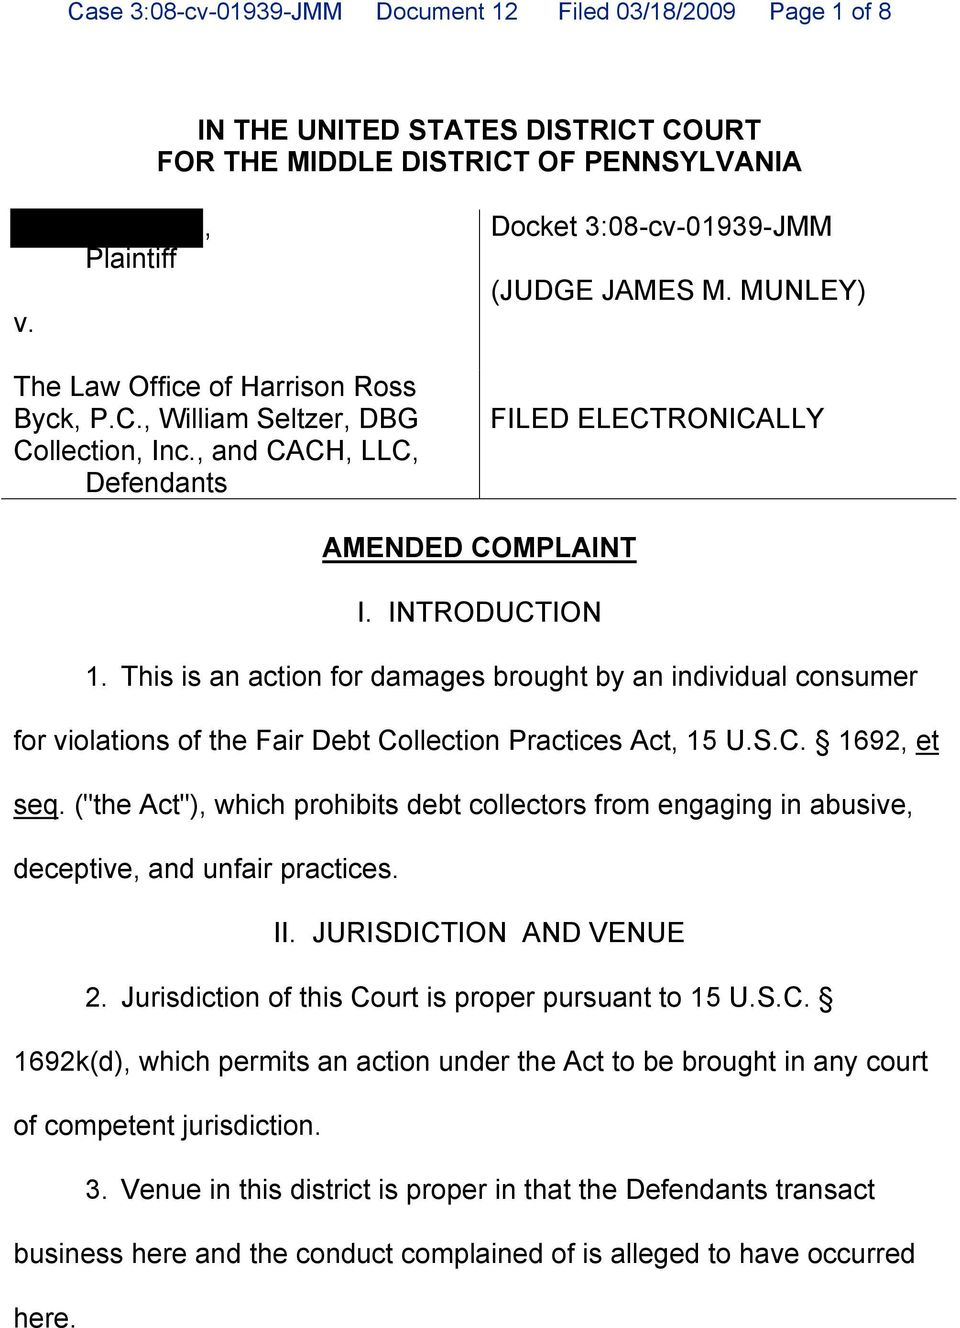 This is an action for damages brought by an individual consumer for violations of the Fair Debt Collection Practices Act, 15 U.S.C. 1692, et seq.